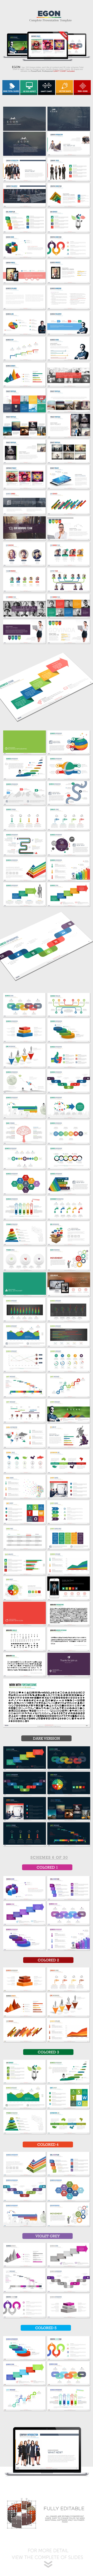 Egon - Complete Powerpoint Template - Business PowerPoint Templates